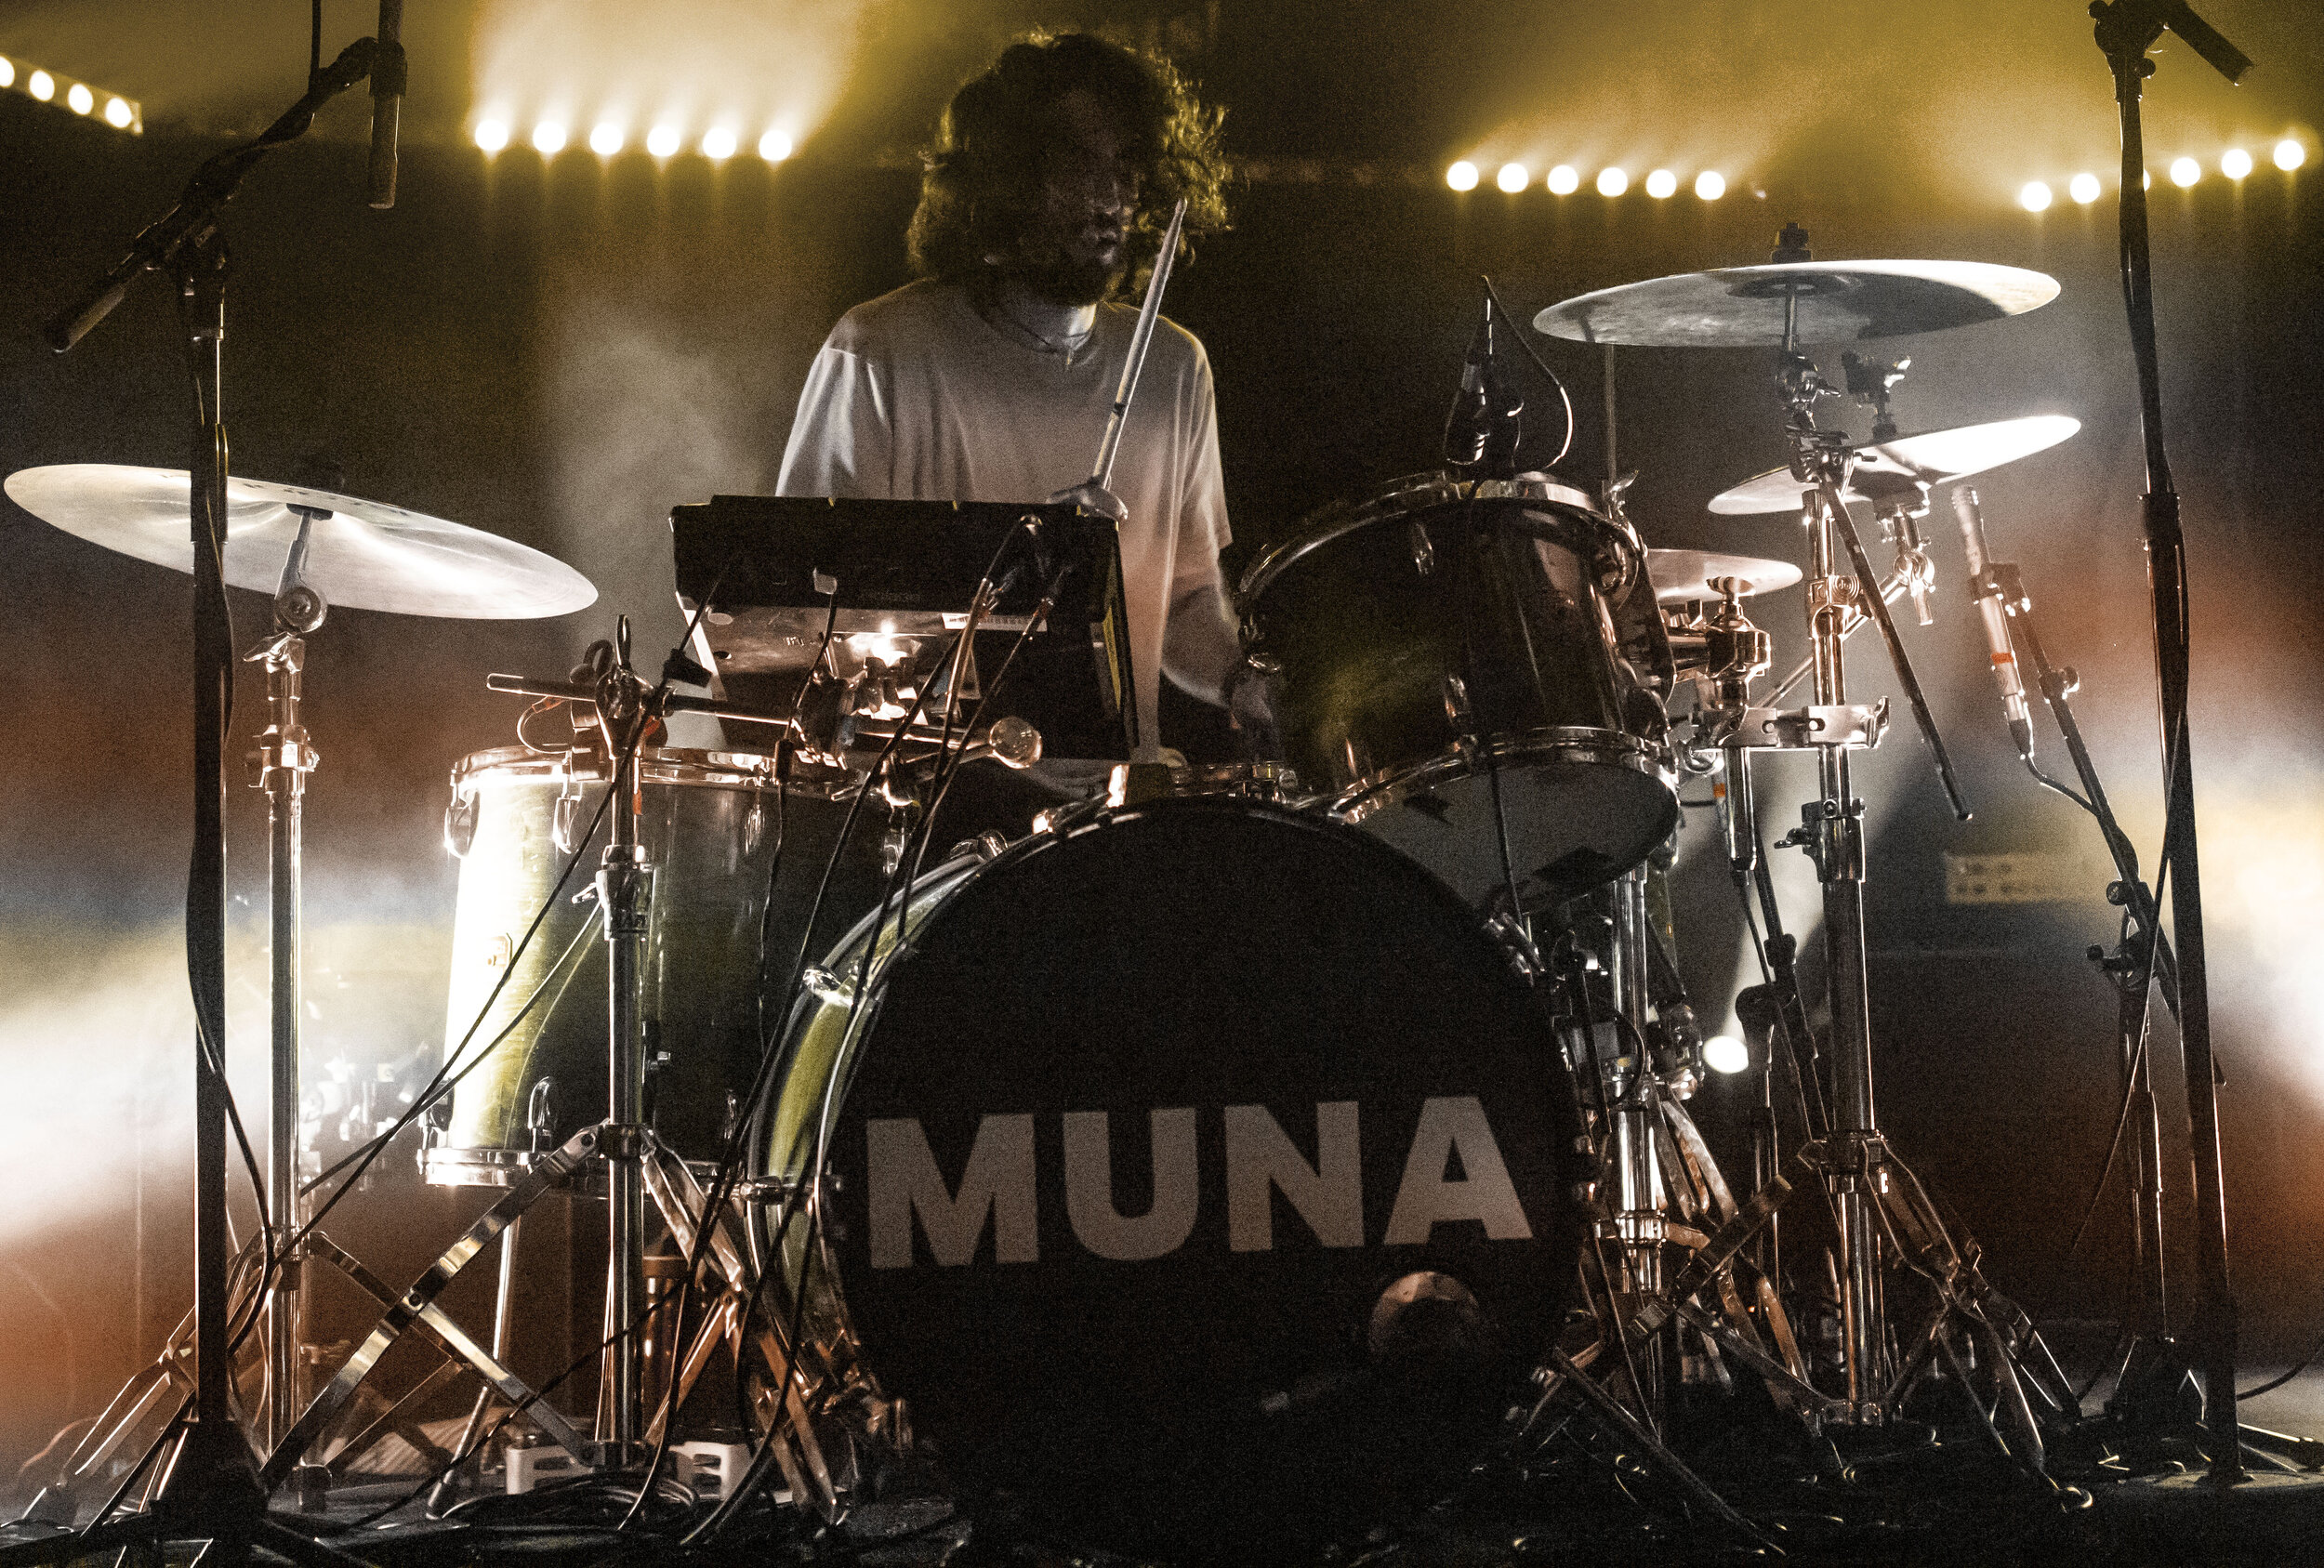 MUNA performs at The Parish on October 2. The group formerly opened for Harry Styles during his self-titled tour in Austin in 2017.